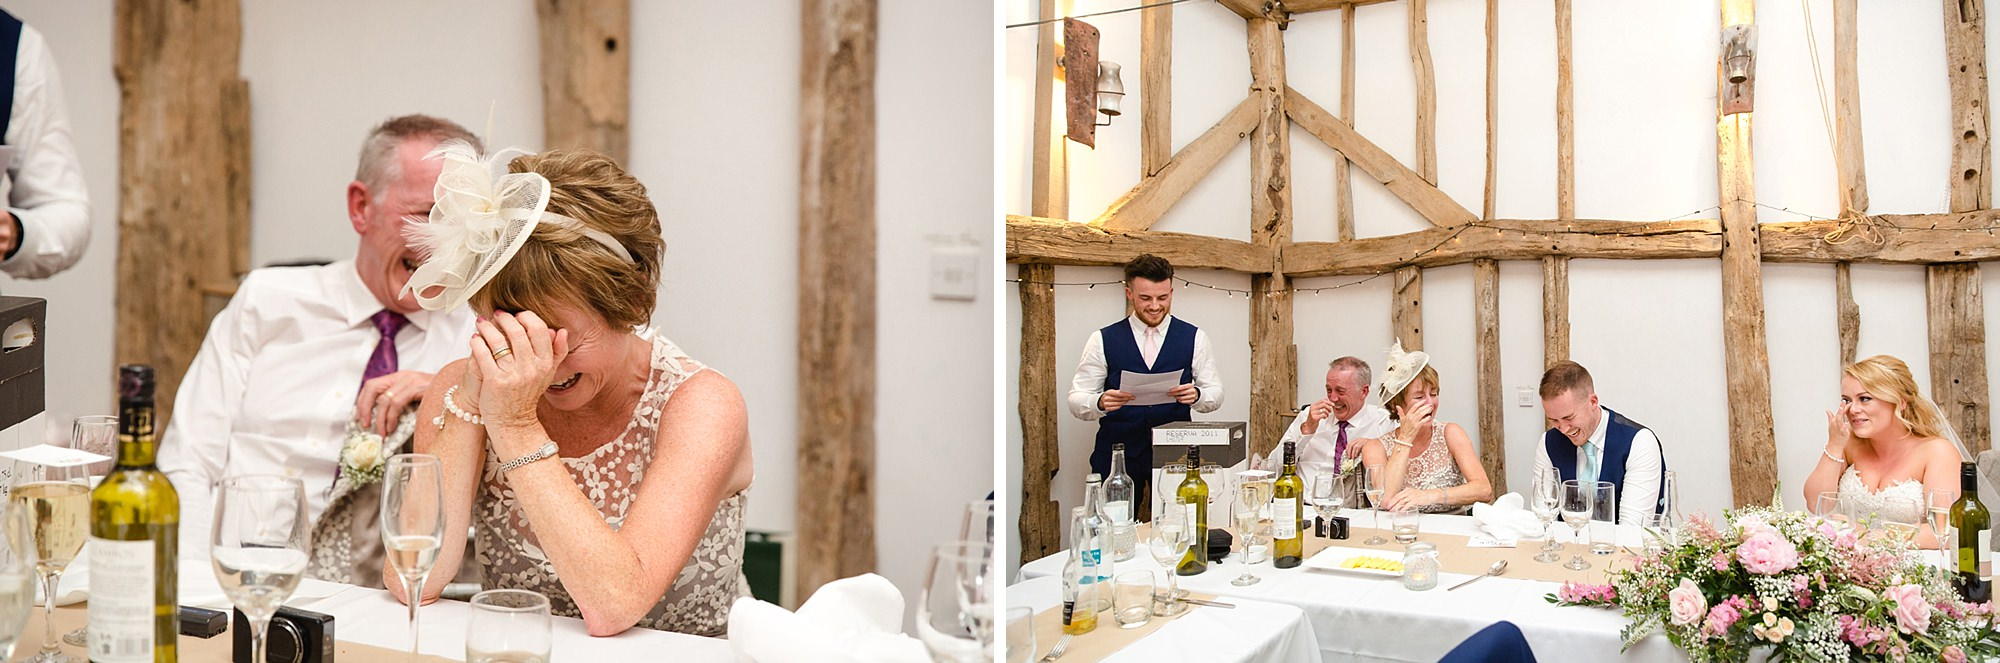 Old Greens Barn Newdigate wedding photography mother of groom during speeches